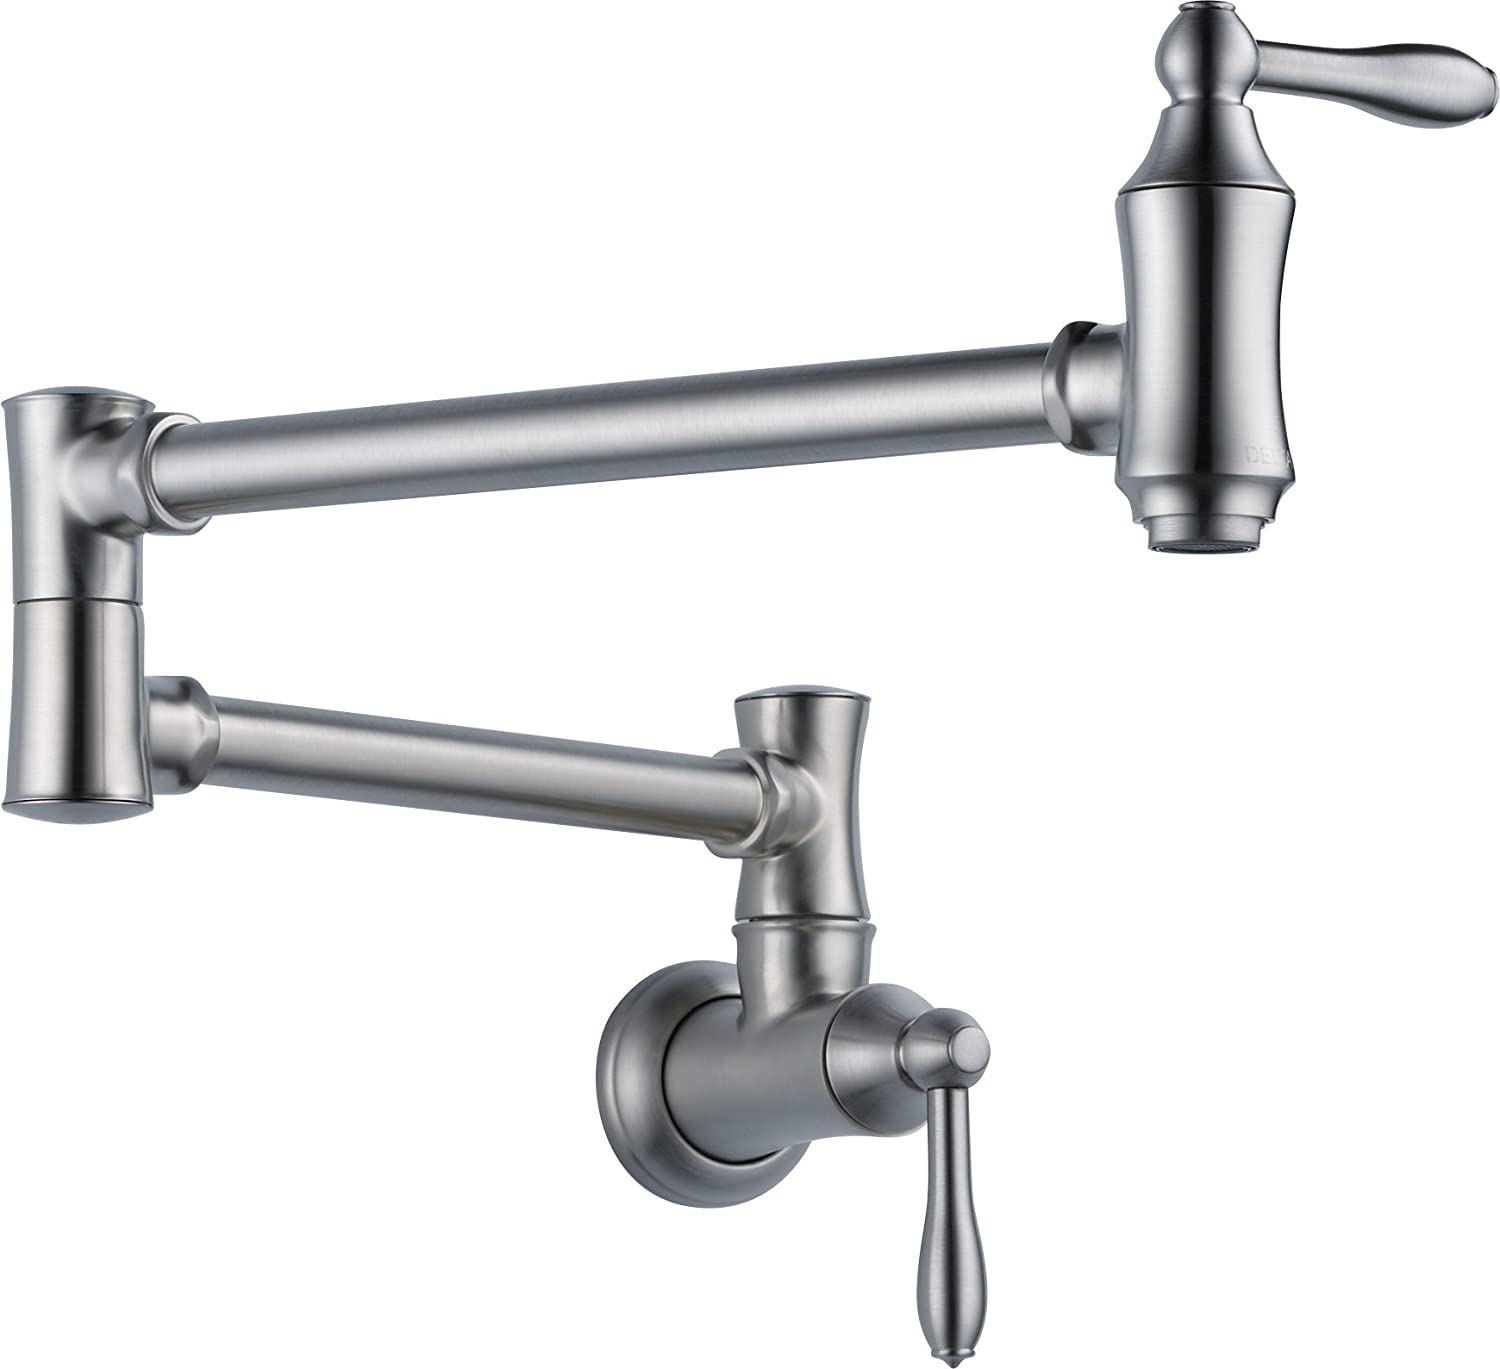 Delta Faucet Traditional Wall-Mount Pot Filler Faucet, Arctic Stainless 1177LF-AR